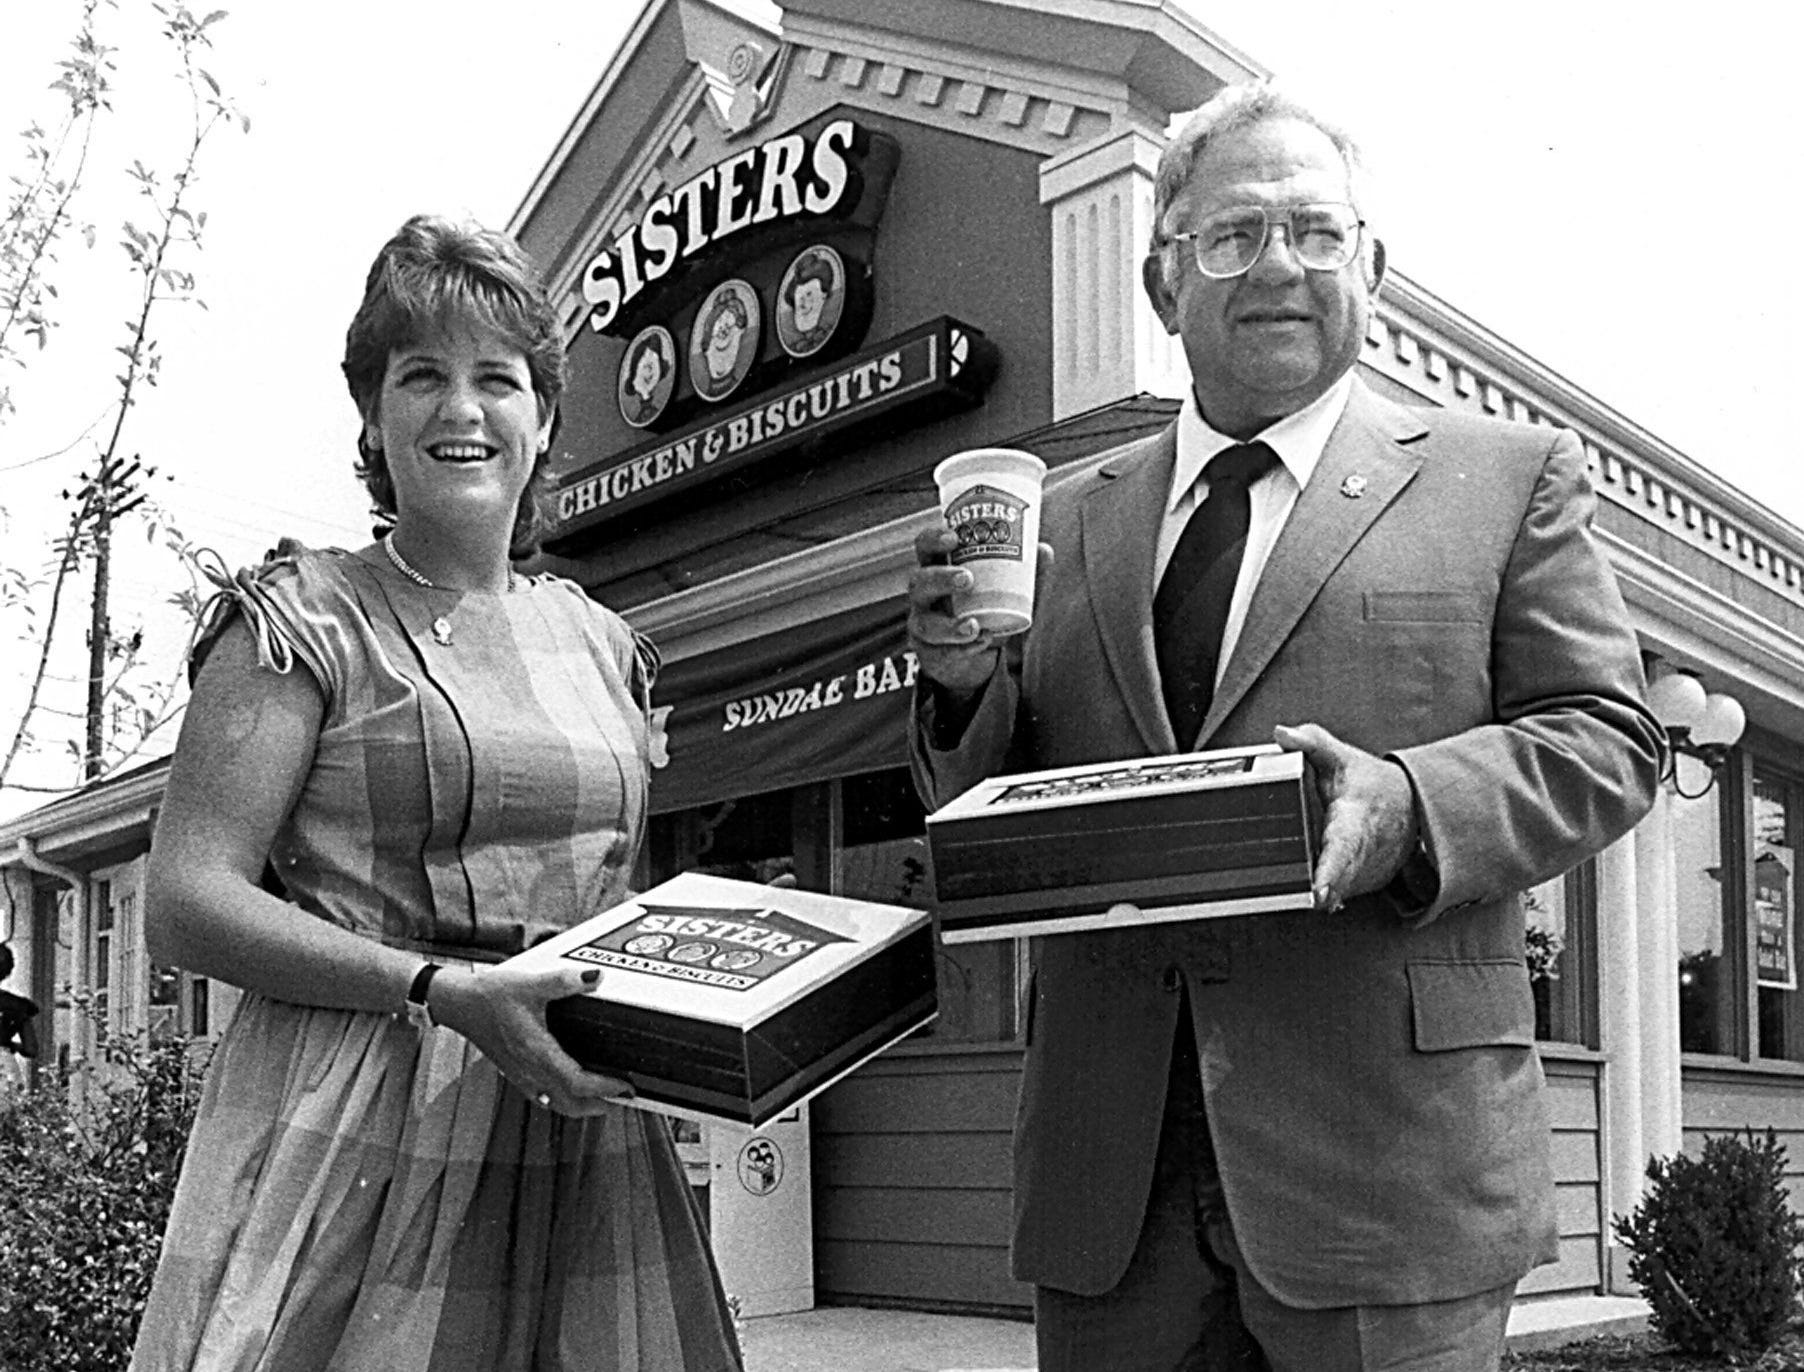 Fast food entrepreneur Dave Thomas (Right) and his daughter stand before Thomas' Sisters Chicken & Biscuits on Crump Blvd. on 10 Aug 1983.  Thomas later got out of the chicken business and opened a chain of hamburger restaurants which he named for his daughter, Wendy (Left).